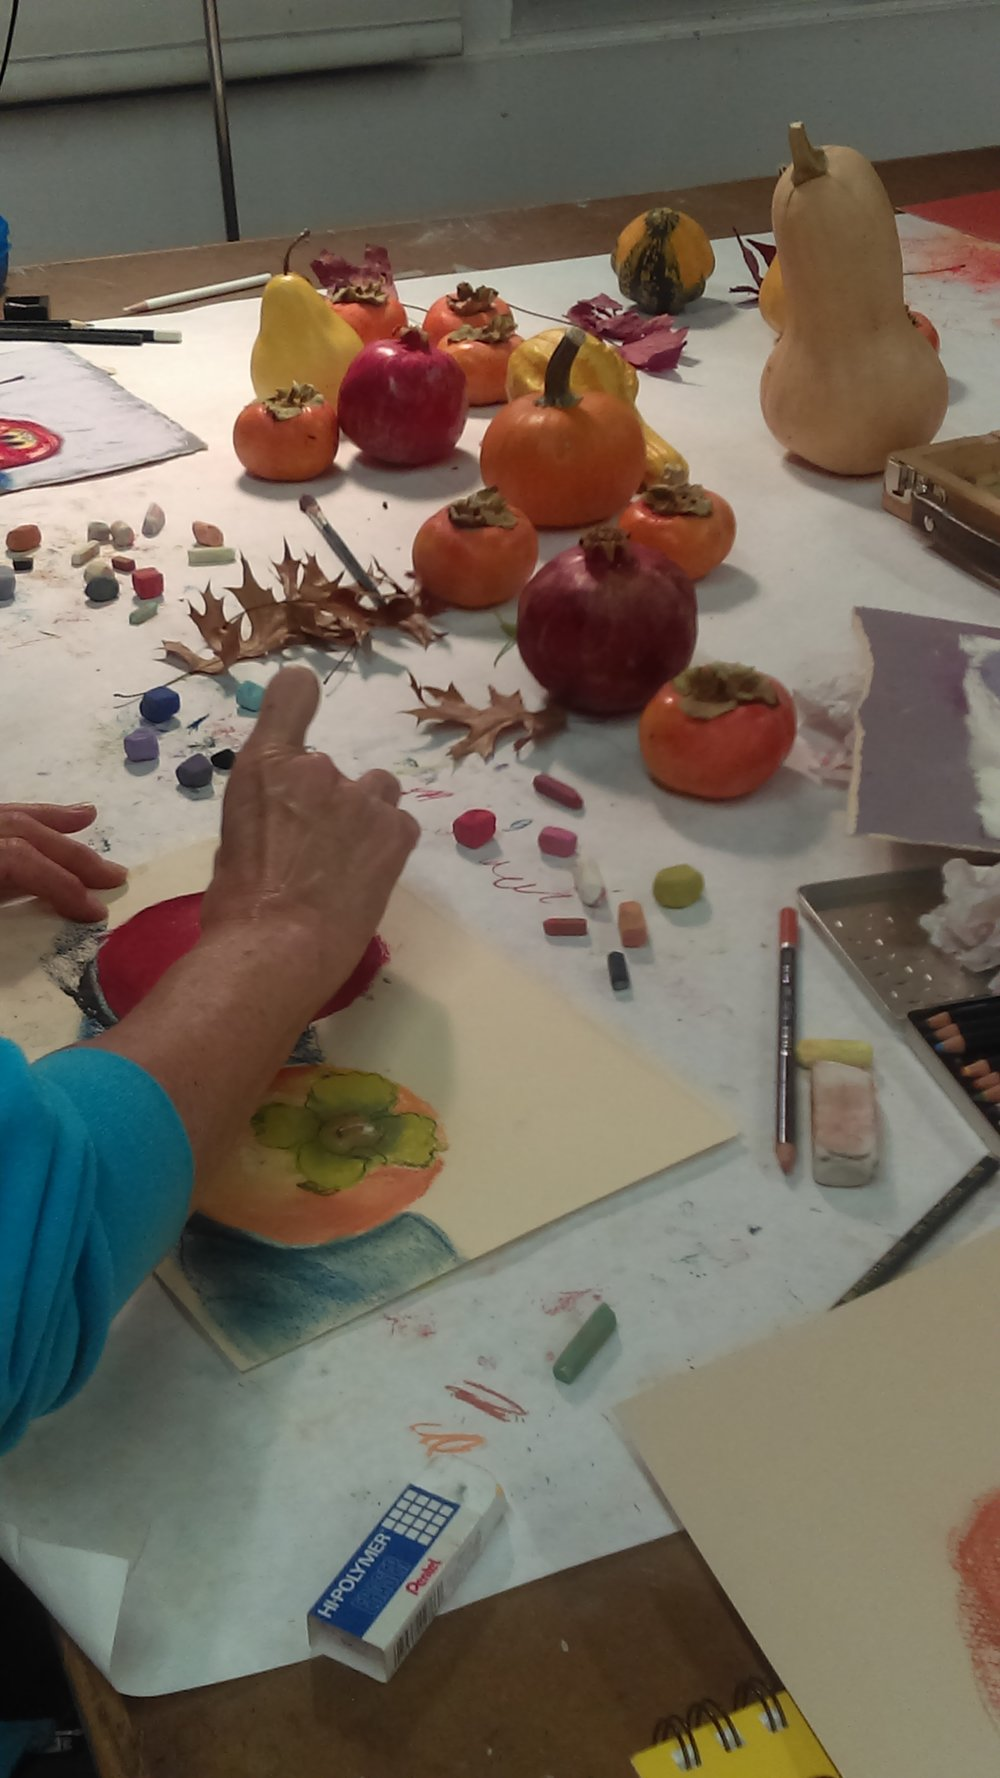 Student working with soft pastels and fall still-life